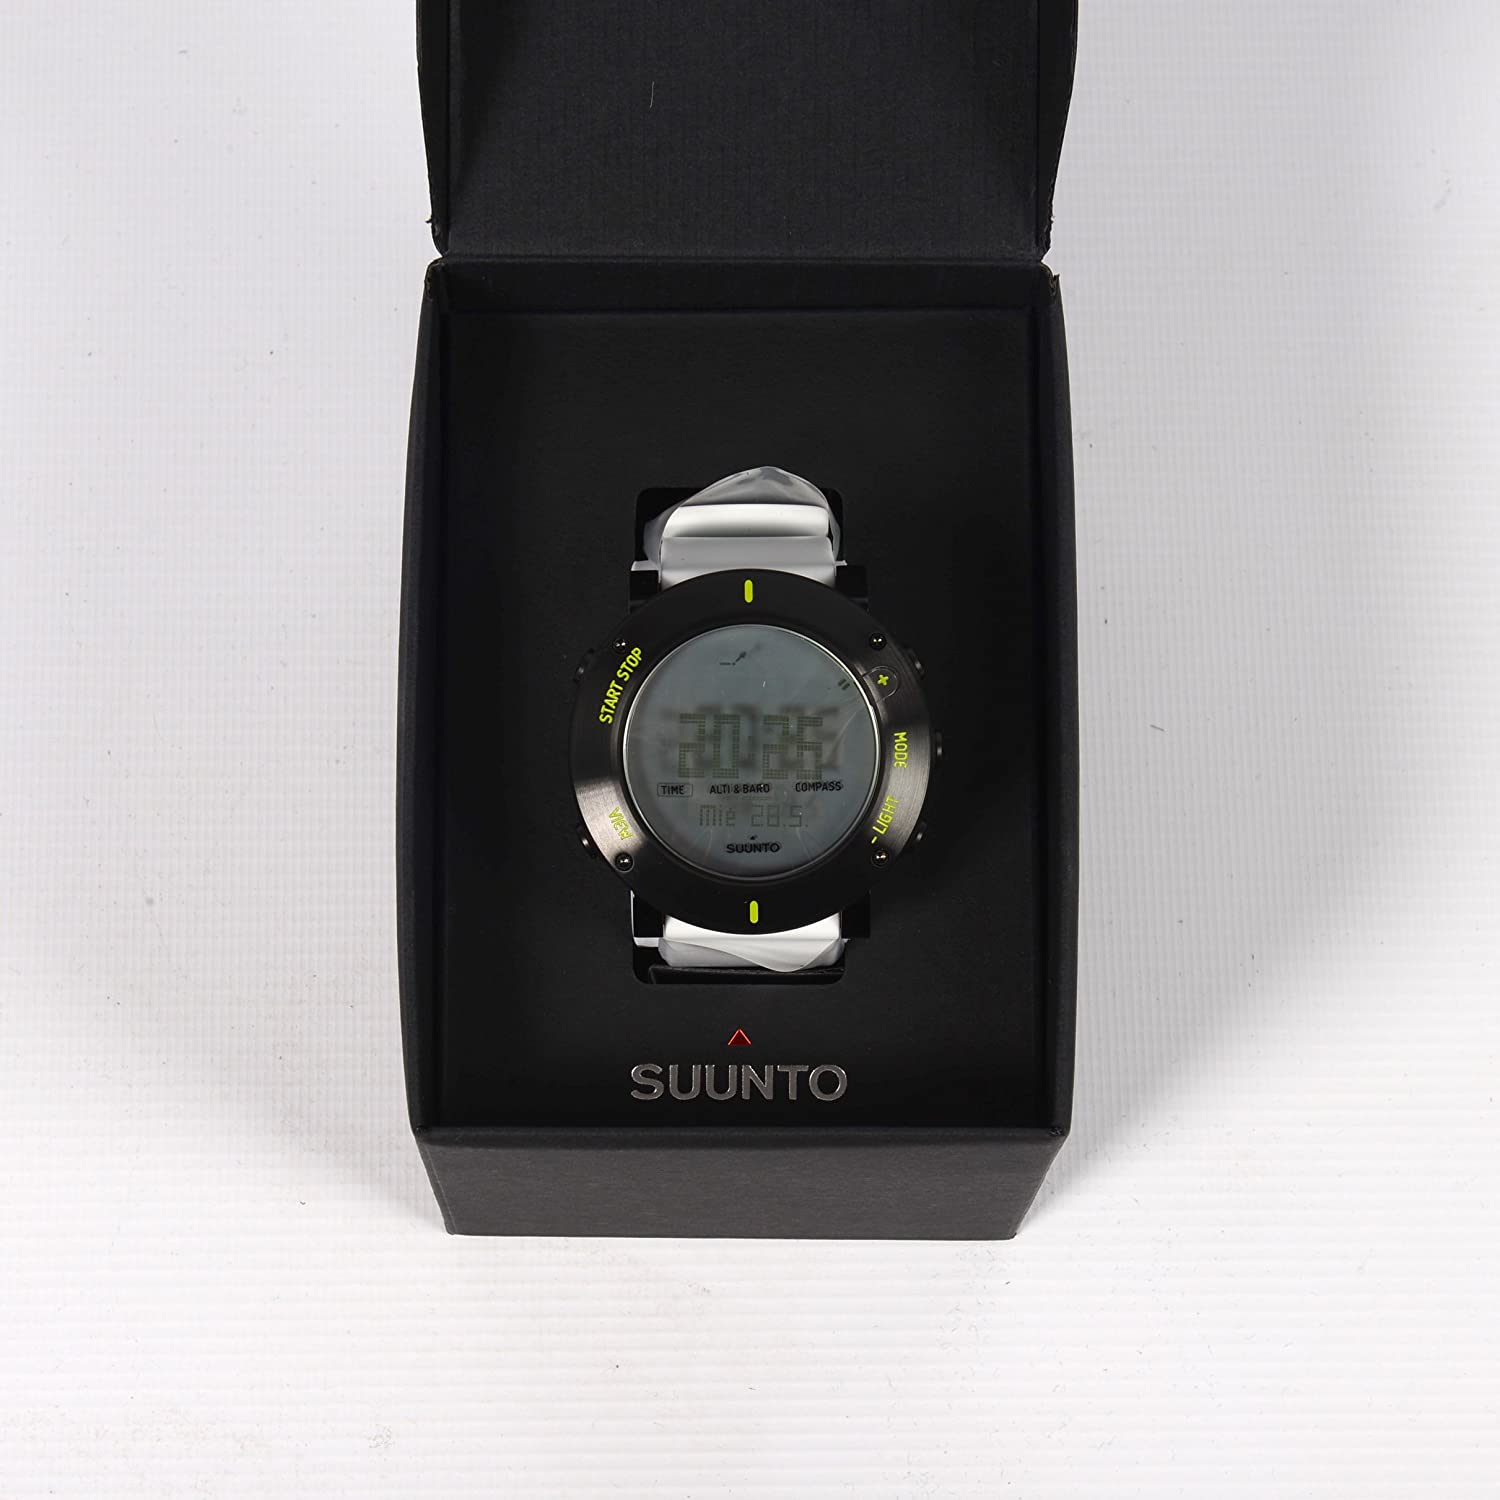 itm egd gunmetal watches gard navita nav gallery egard image product watch gun ebay black abc